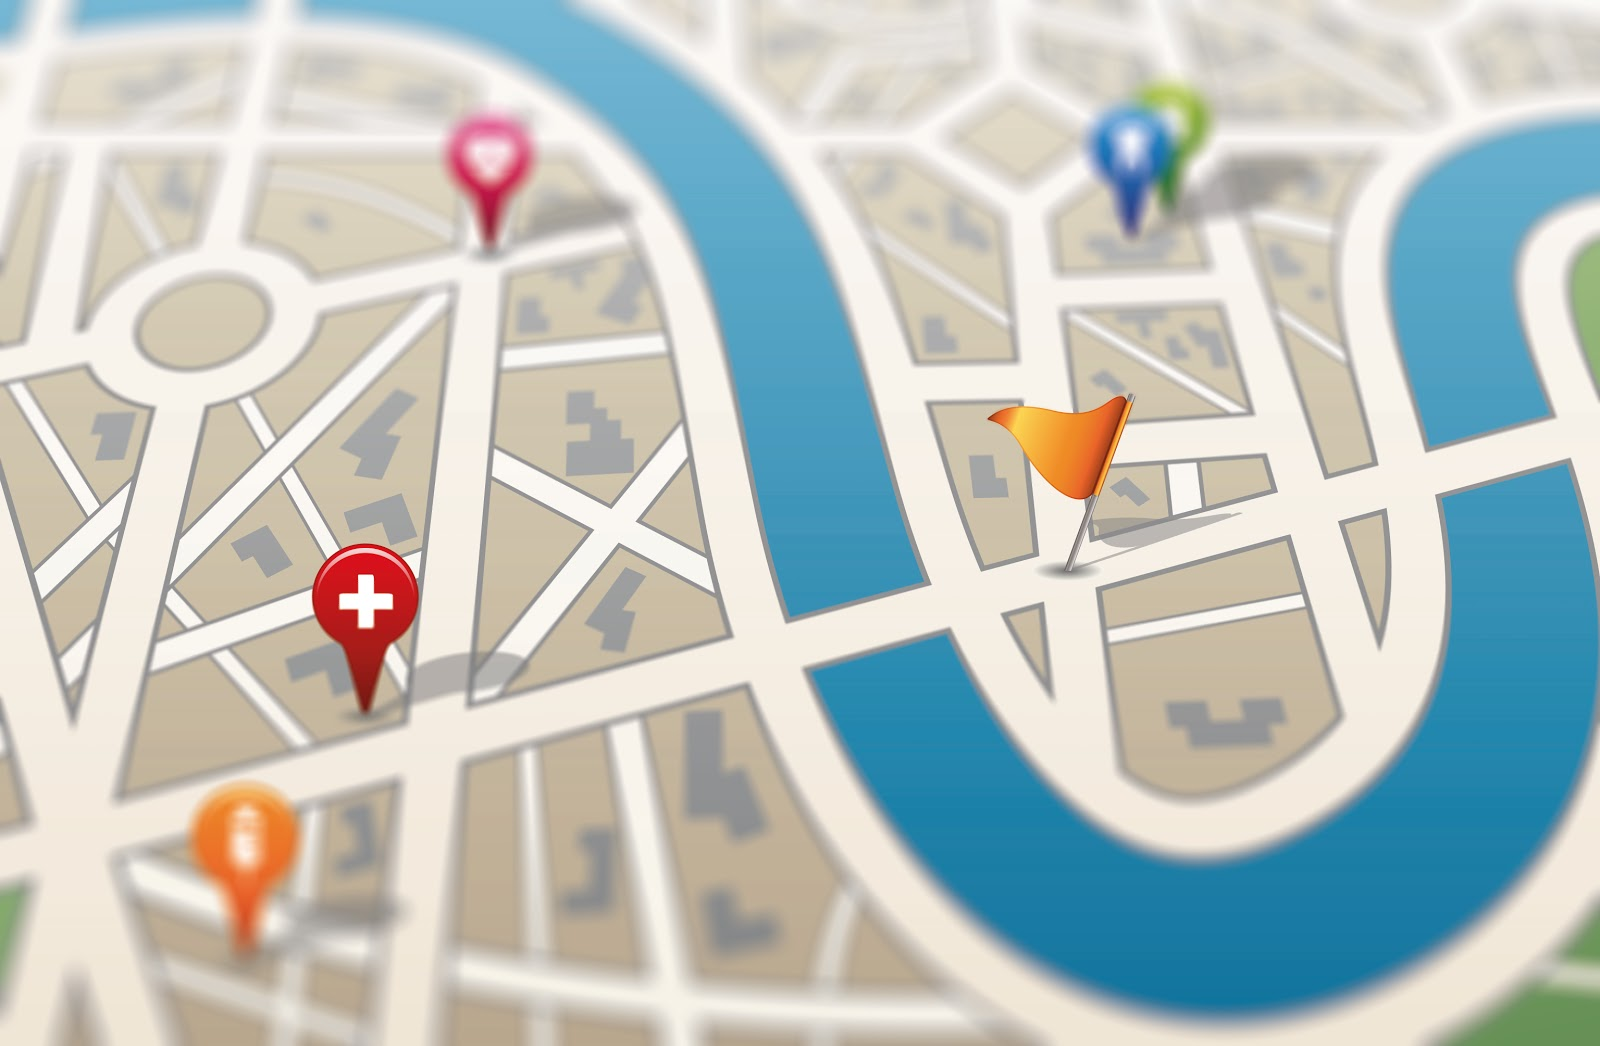 Get the Way to download & install Free GPS Phone tracker